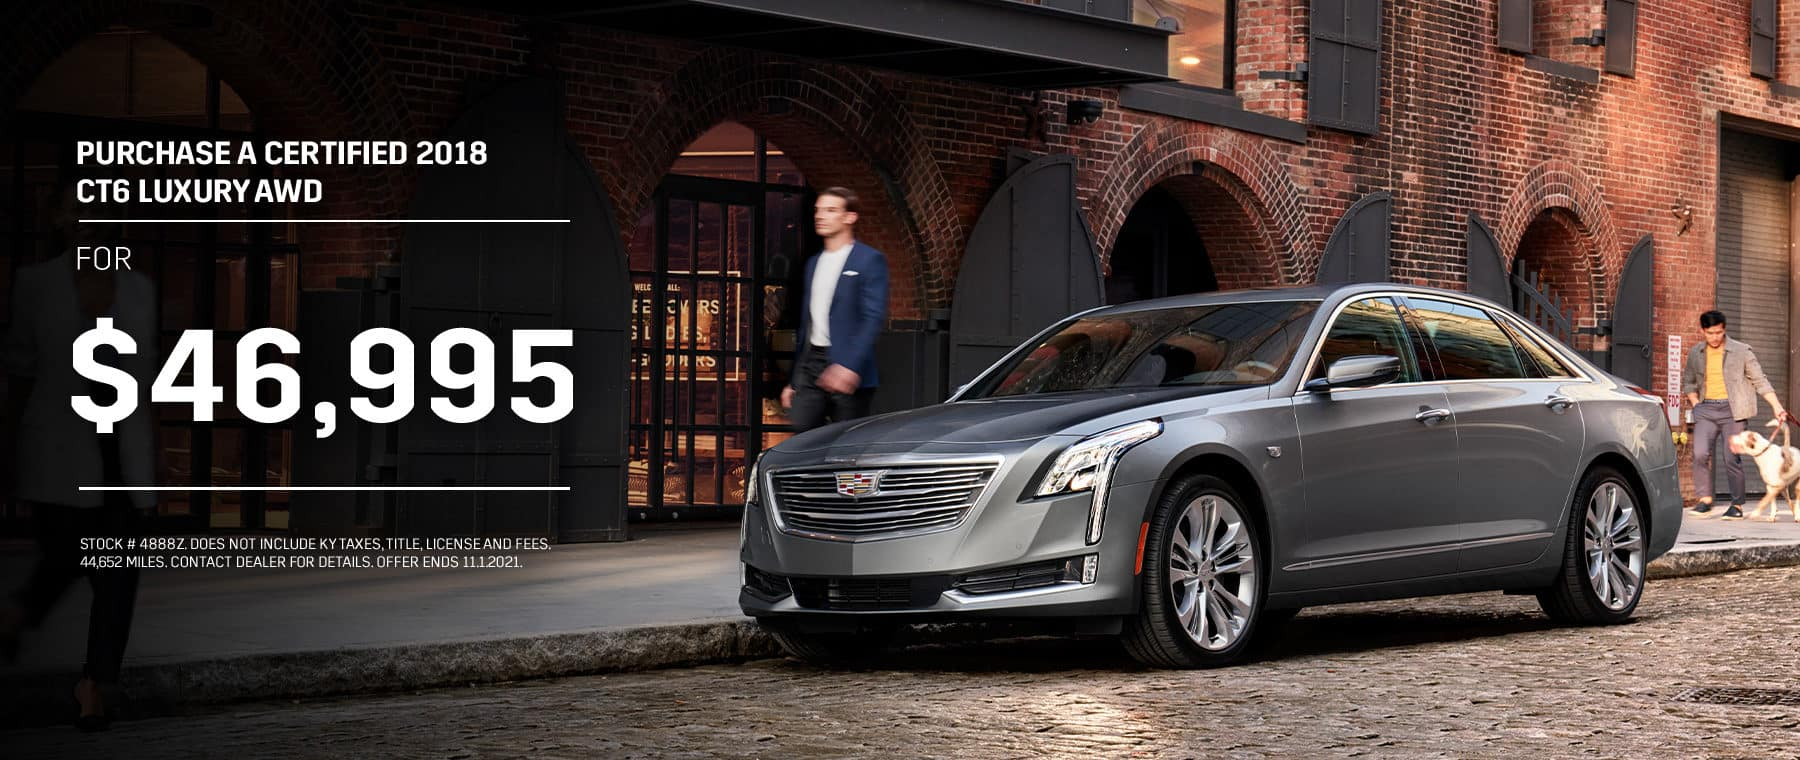 Purchase a Certified 2018 CT6 Luxury AWD For $46,995